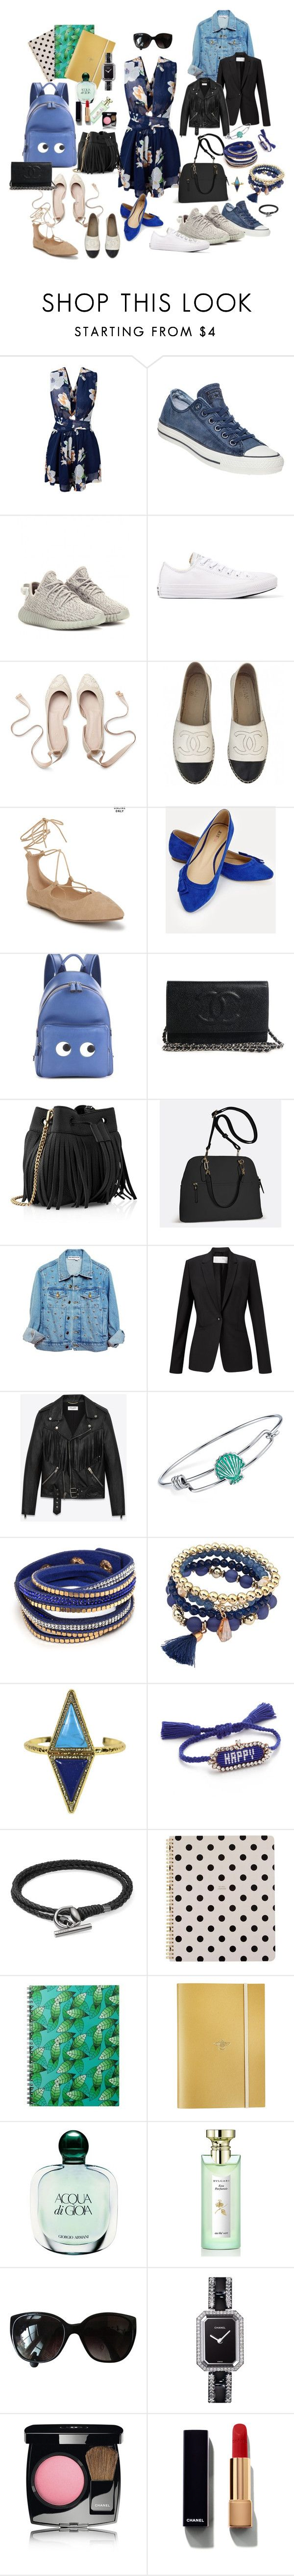 office set by veronic-s on Polyvore featuring Yves Saint Laurent, HUGO, adidas Originals, Chanel, Converse, JustFab, Aéropostale, Anya Hindmarch, Whistles and Avenue